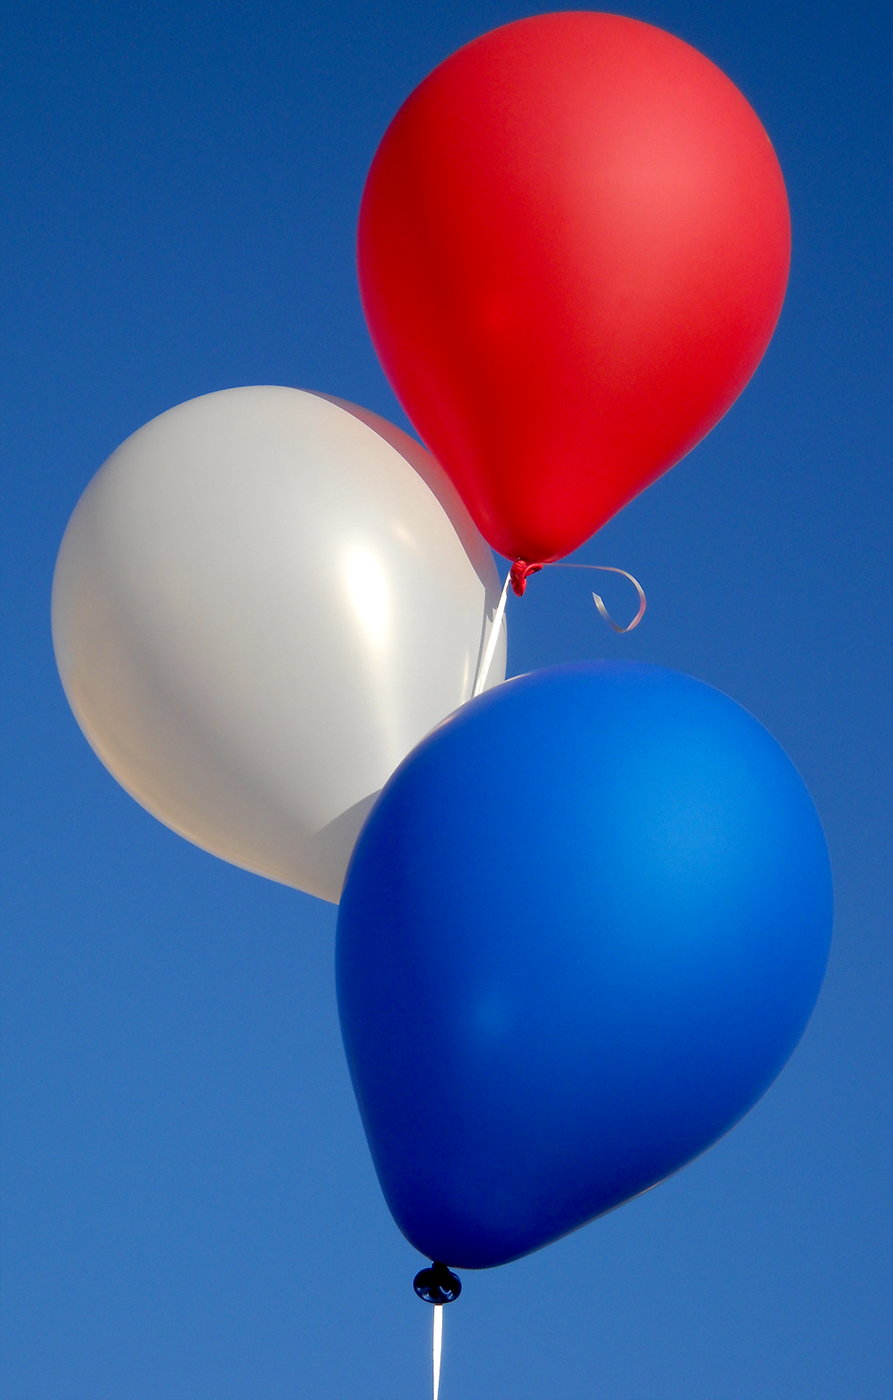 Balloons Blue Balloons Red White Blue Red And White